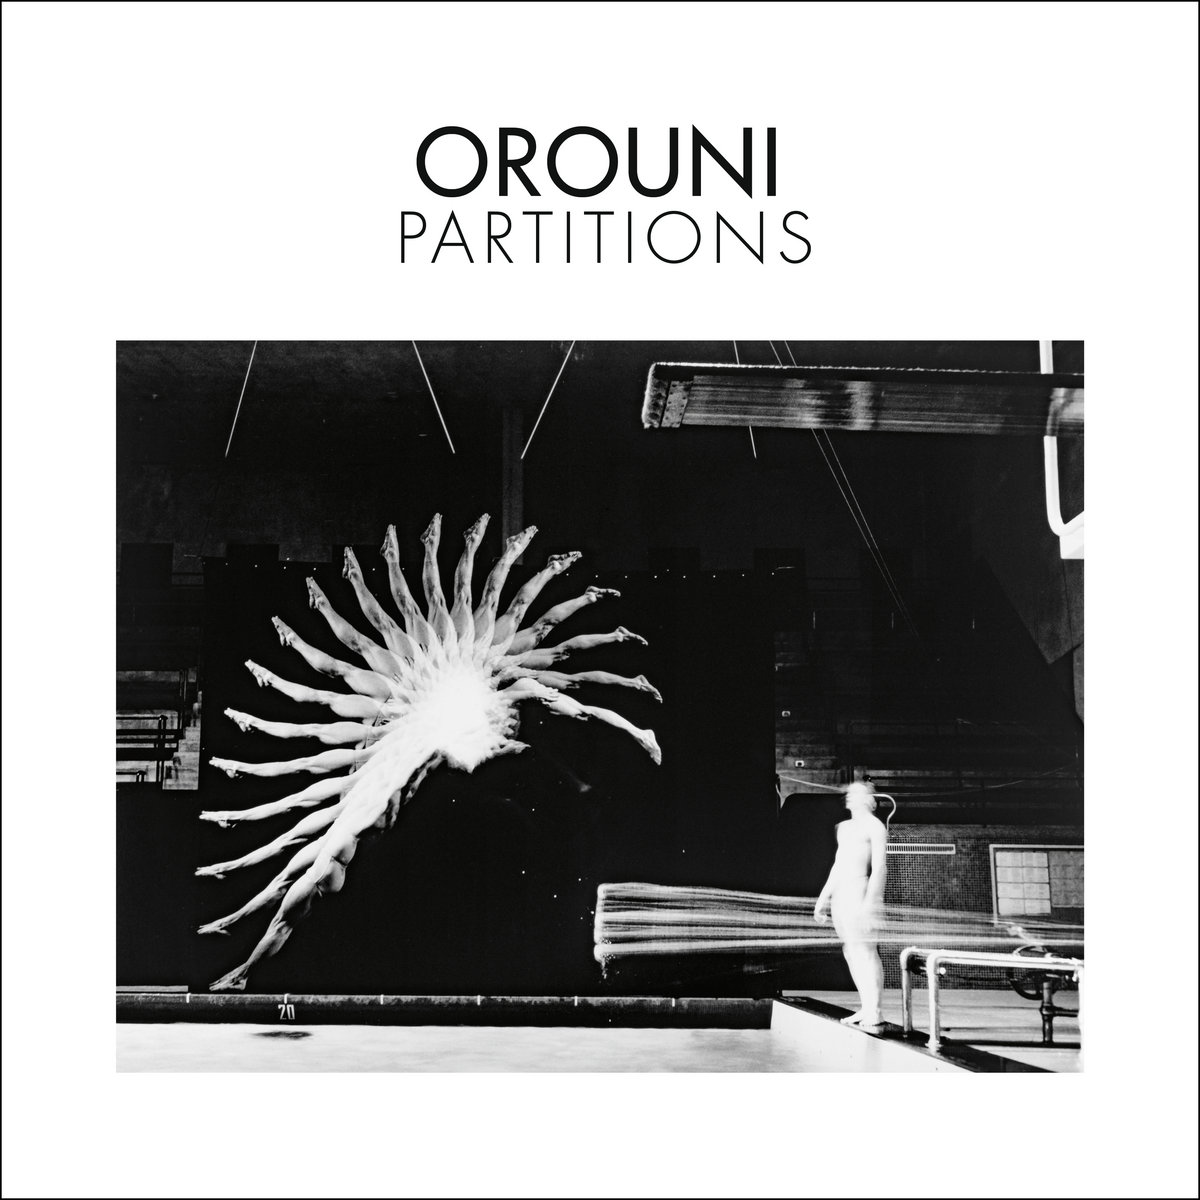 Partitions | Orouni